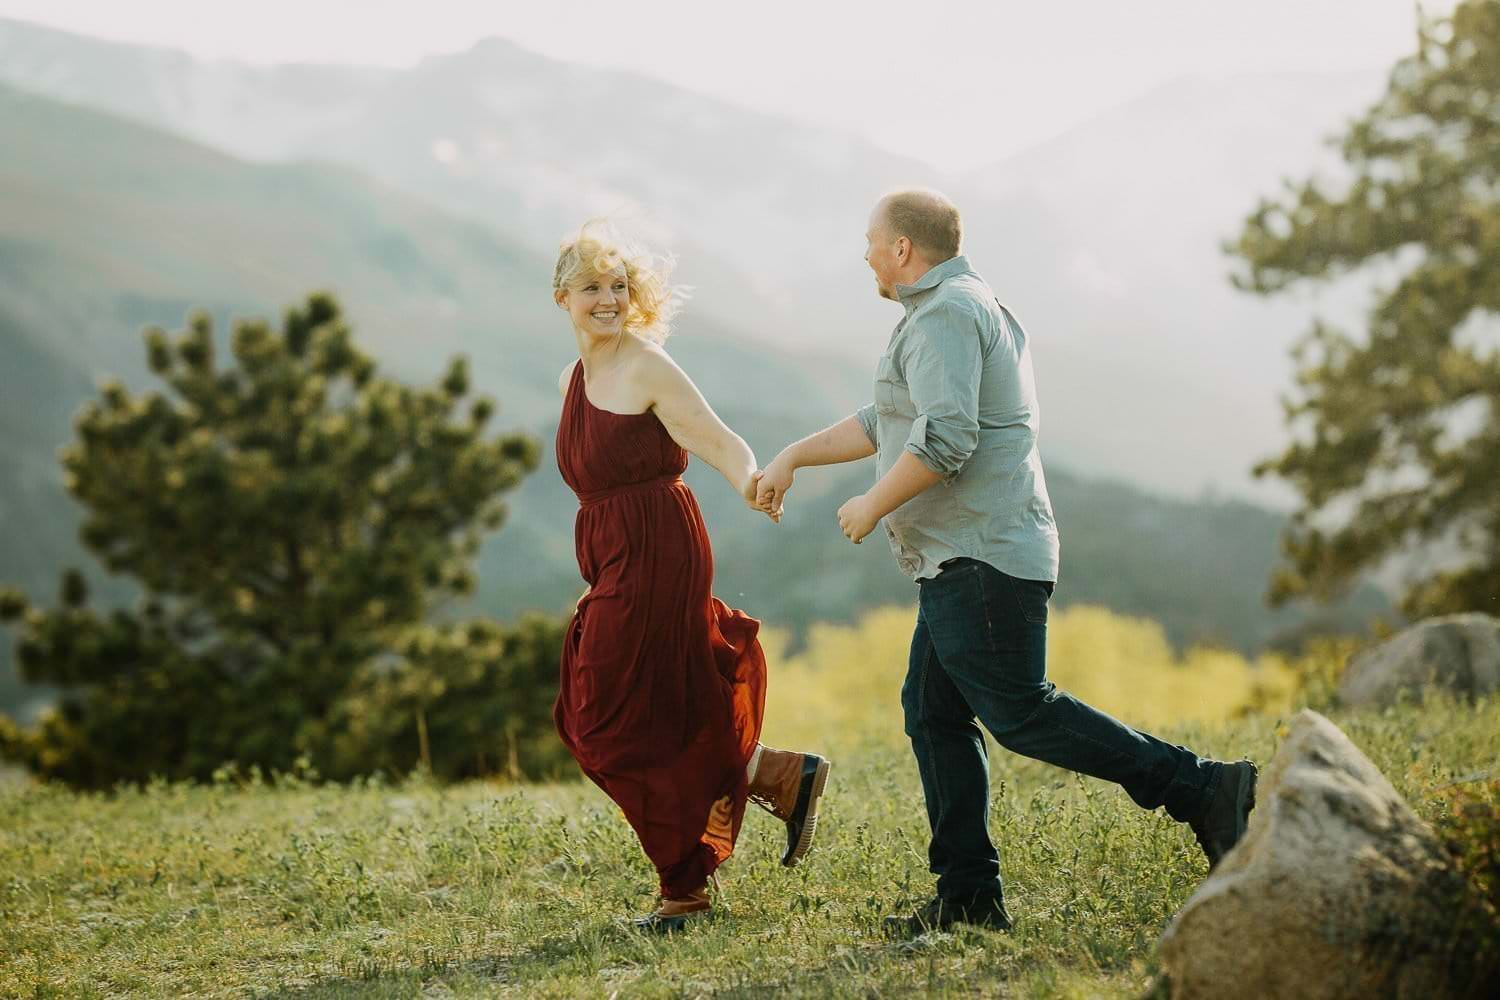 ROCKY MOUNTAIN NATIONAL PARK VOWS RENEWAL|3M CURVE ADVENTURE ELOPEMENT|COLORADO MOUNTAIN ANNIVERSARY VOWS RENEWAL|ESTES PARK COLORADO| DEVIN + KELLY